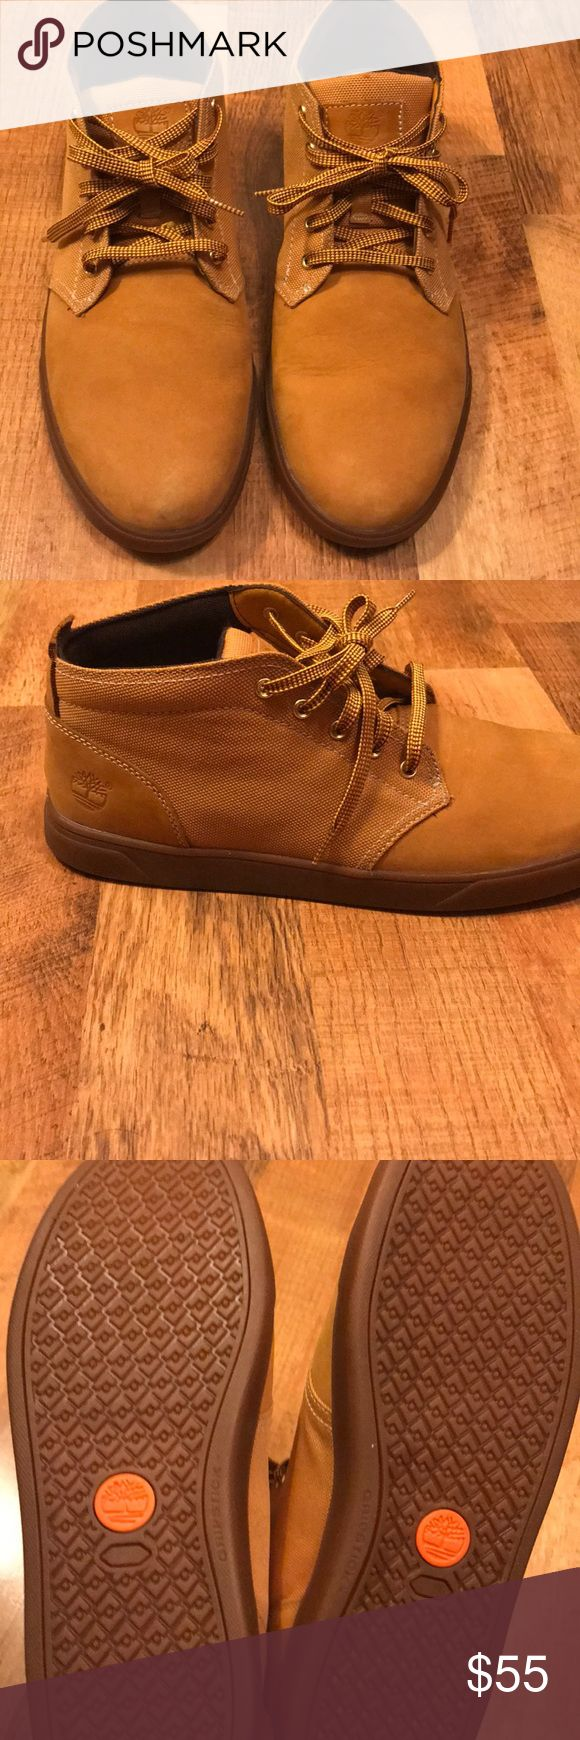 Timberland chukka sneakers Selling these never before worn timberland chukka sneakers bottom of the shoes can tell that they have never been work before everything in tack original shoe laces. Timberland Shoes Sneakers